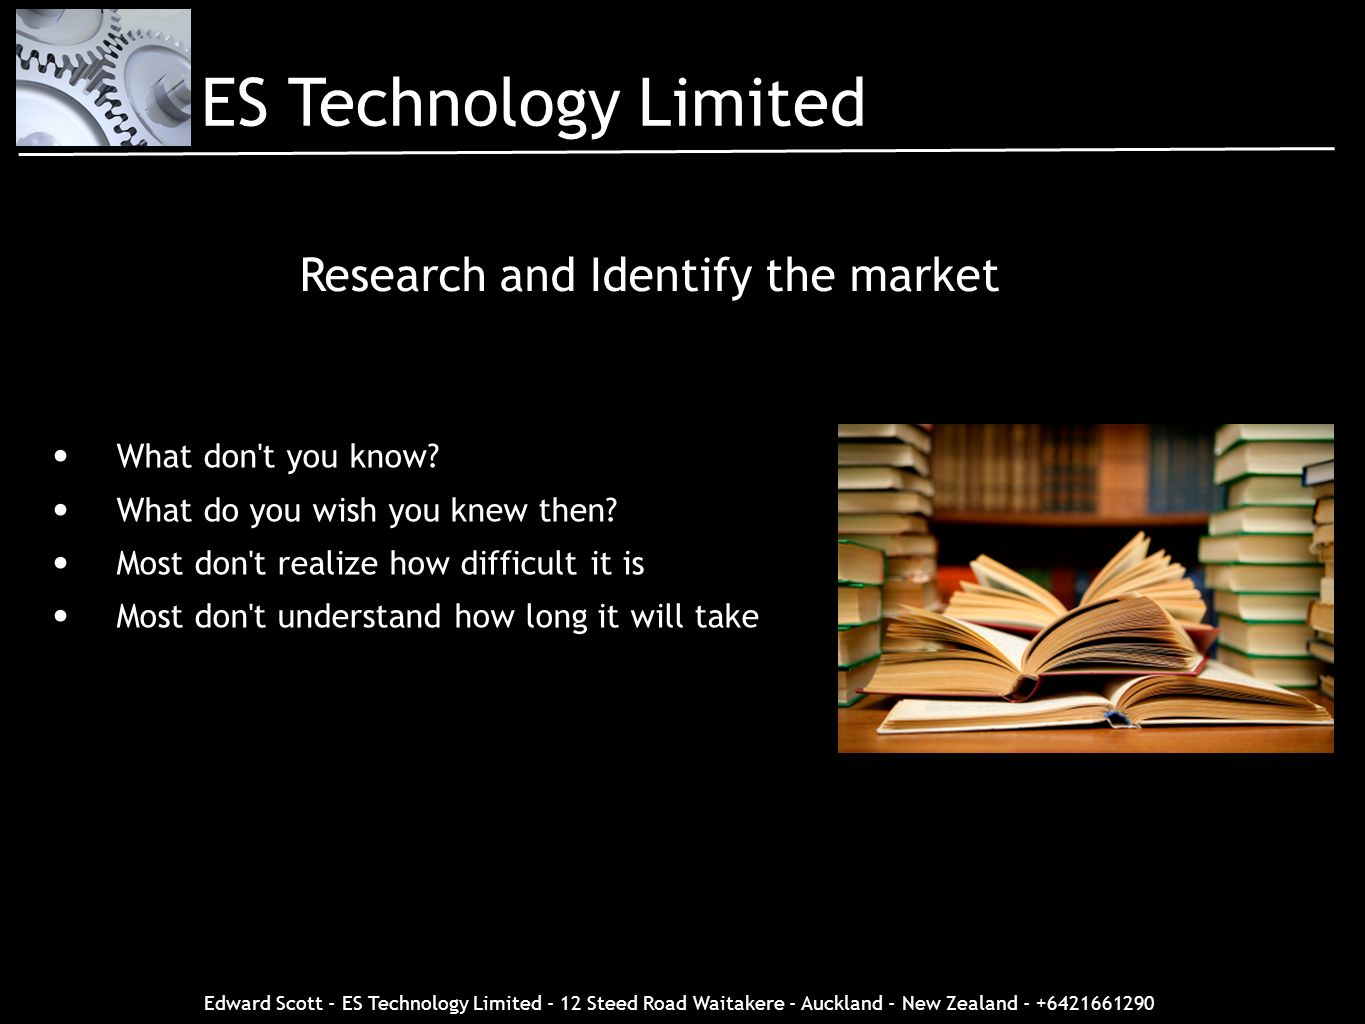 Research and Identify the market